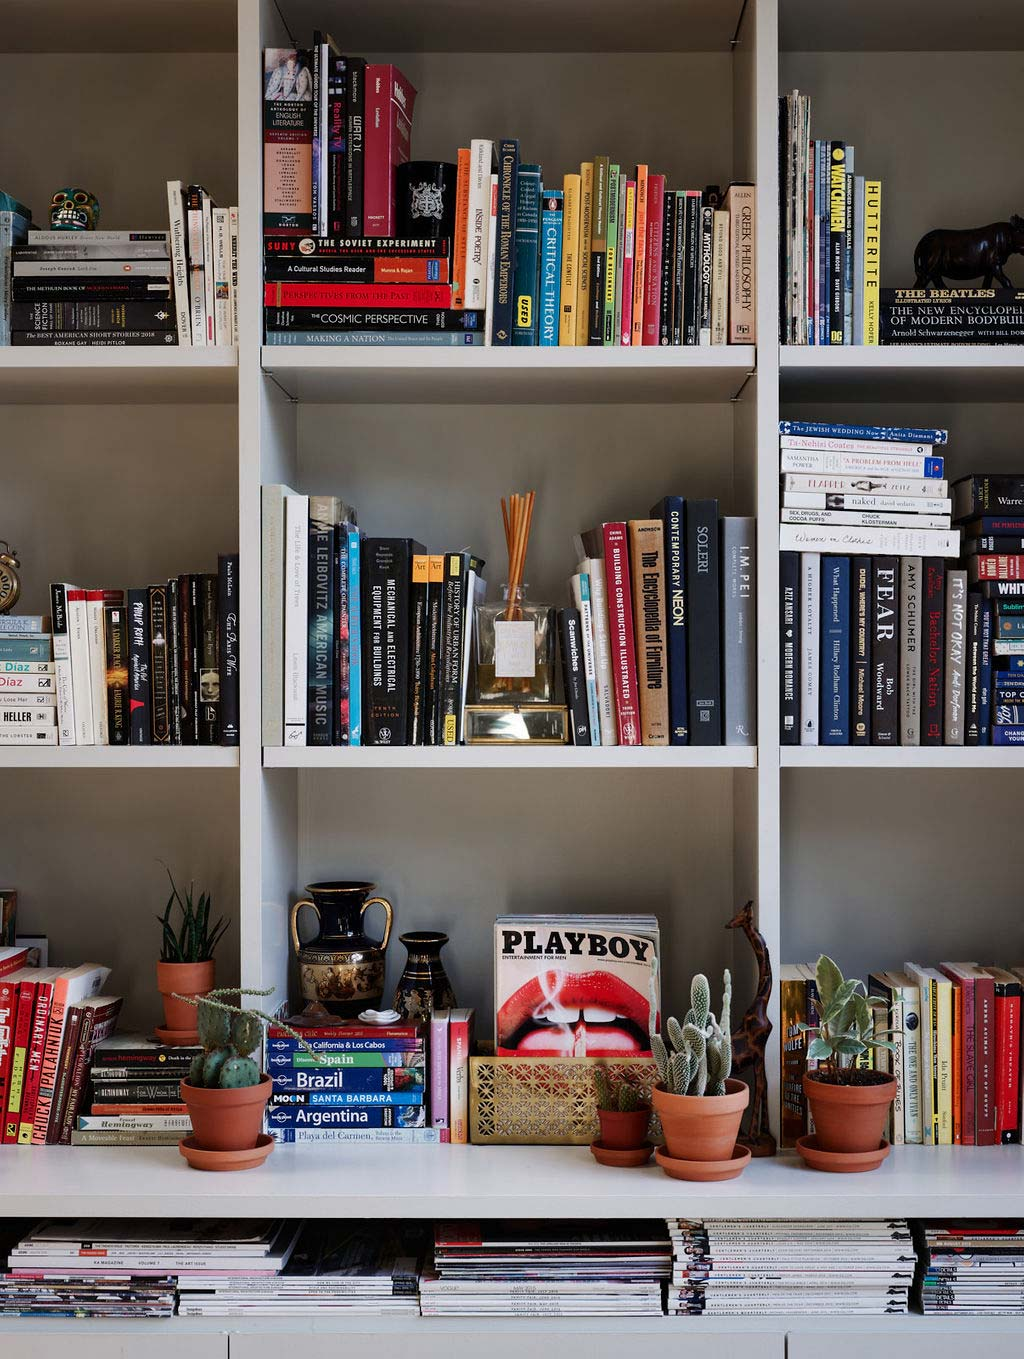 With authors from Ernest Hemingway to Ta-Nehisi Coates, and books on subjects including sandwiches and Yiddish, the rhyme and reason to Forrest and his wife's book collection is simple: they collect what they like.